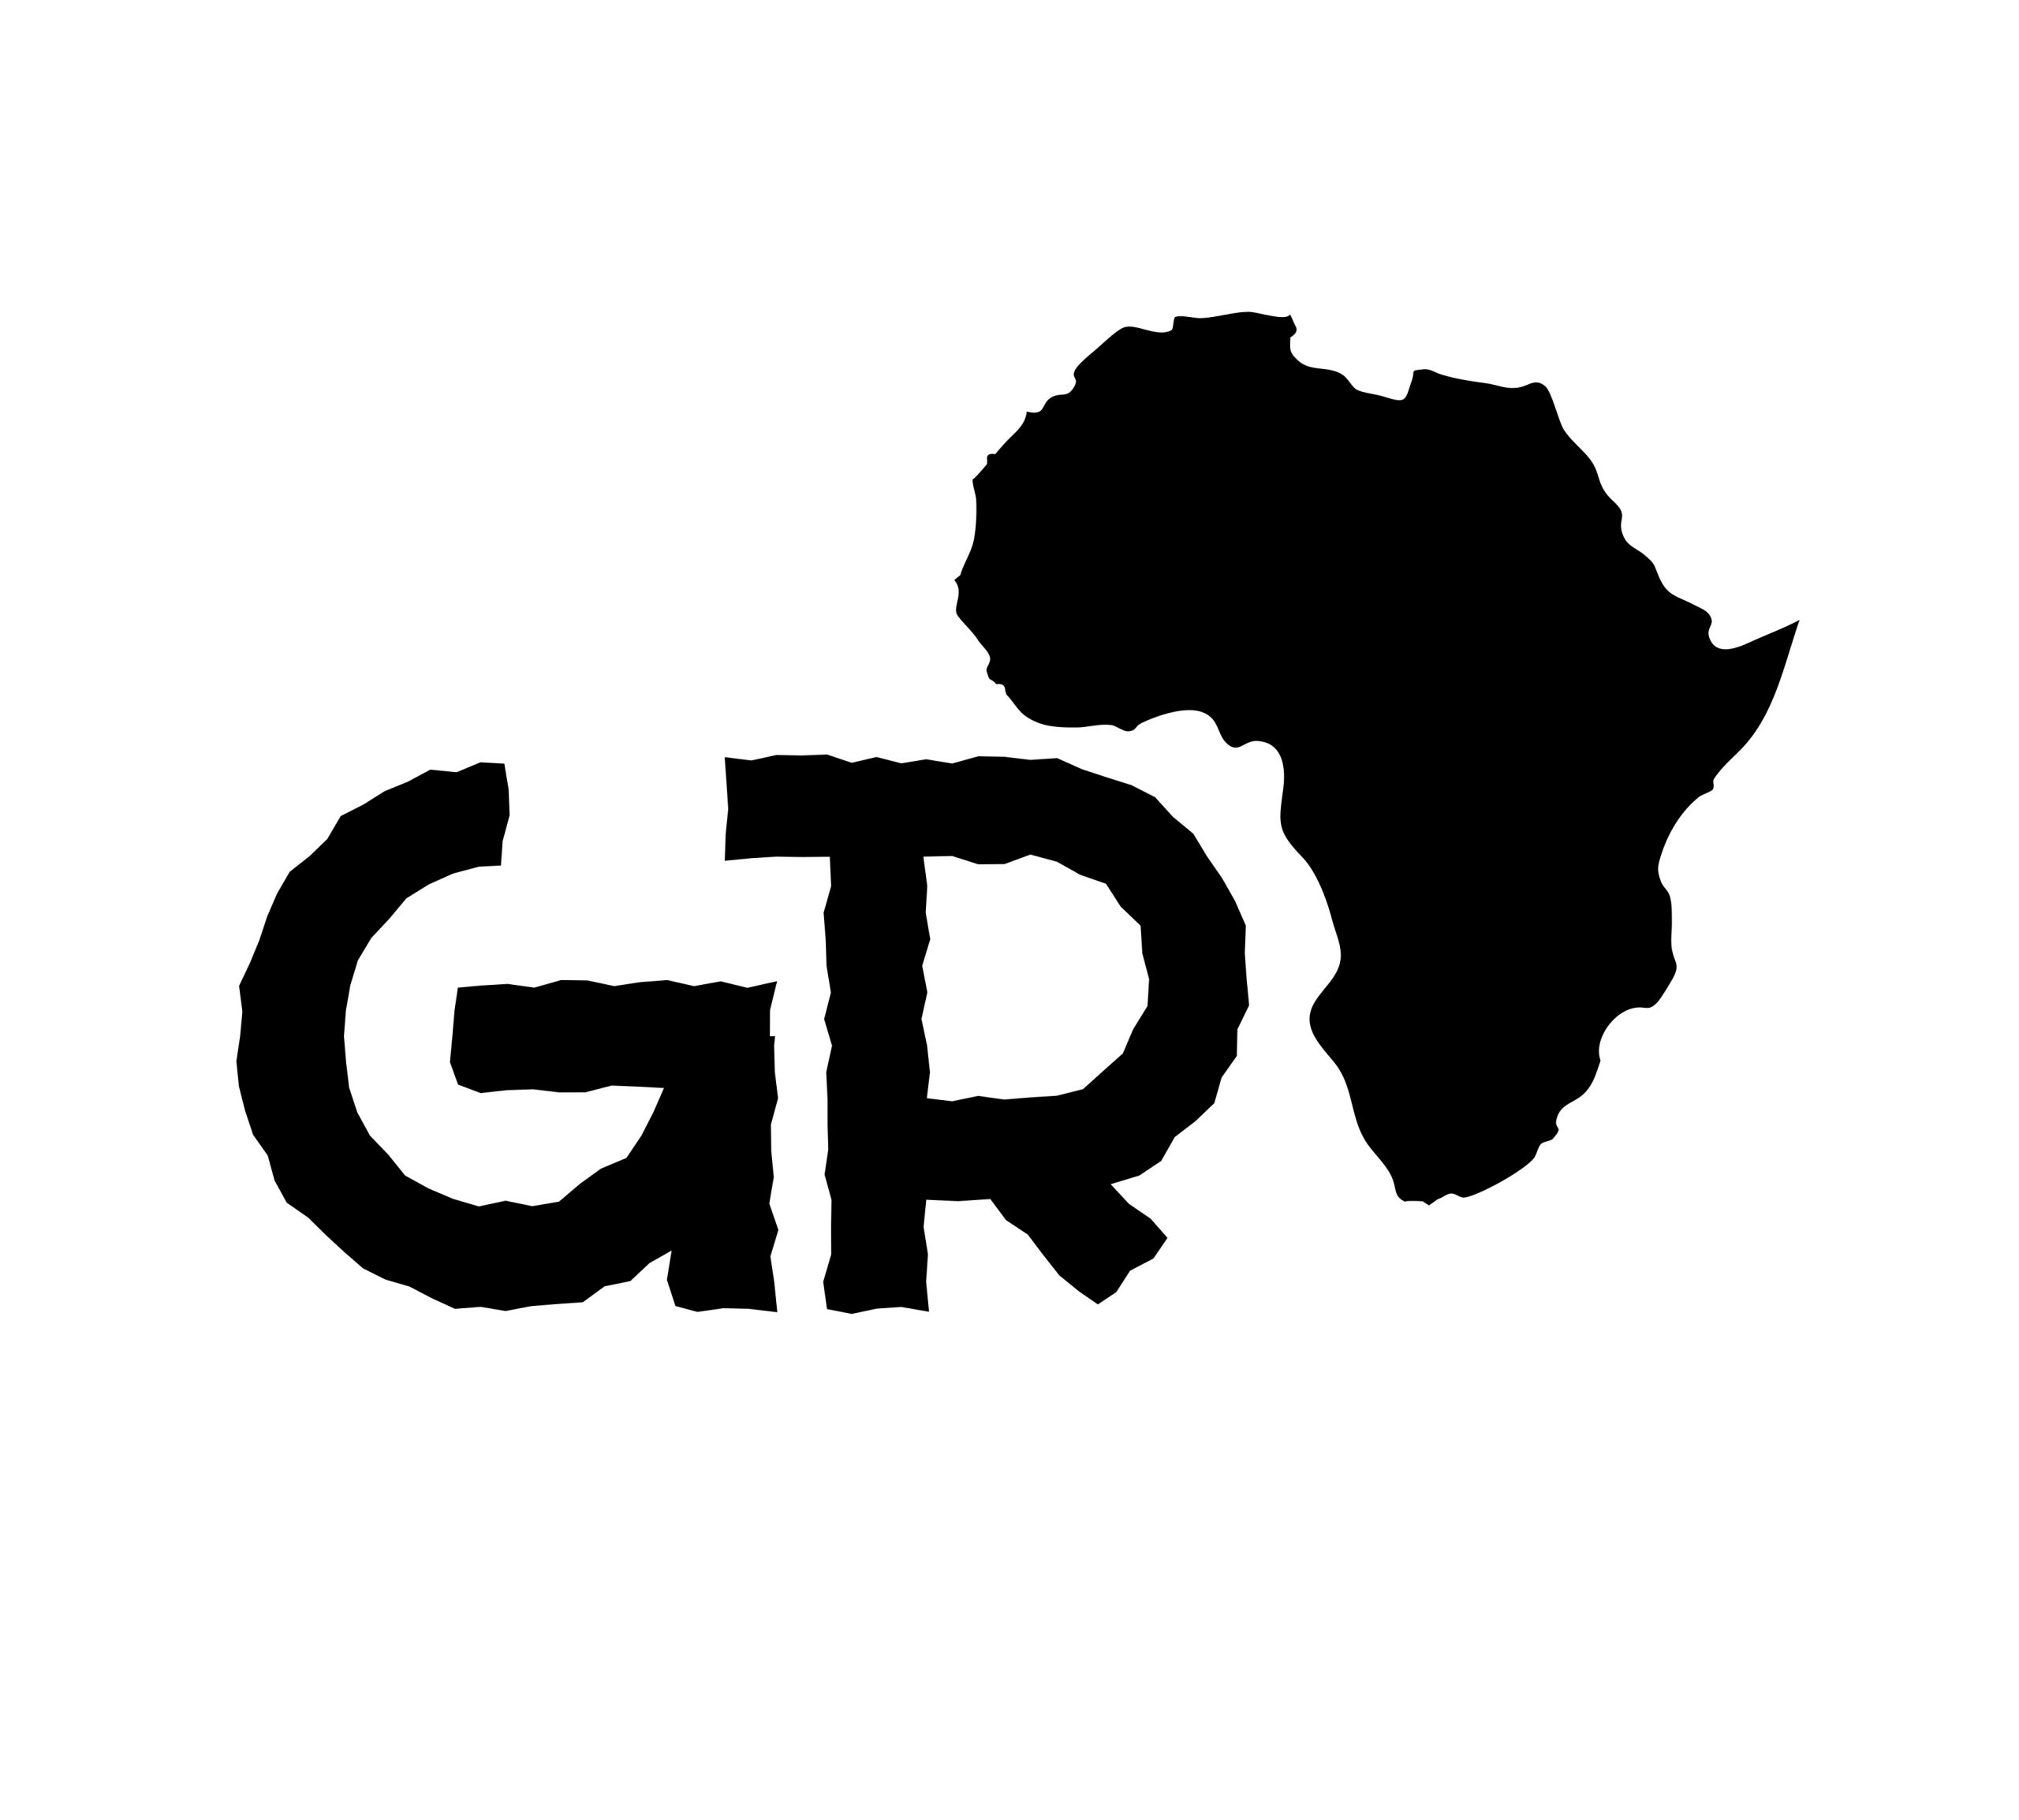 https://leftbraincreativegroup.com/wp-content/uploads/2018/09/gra_logo_black-scaled.jpg